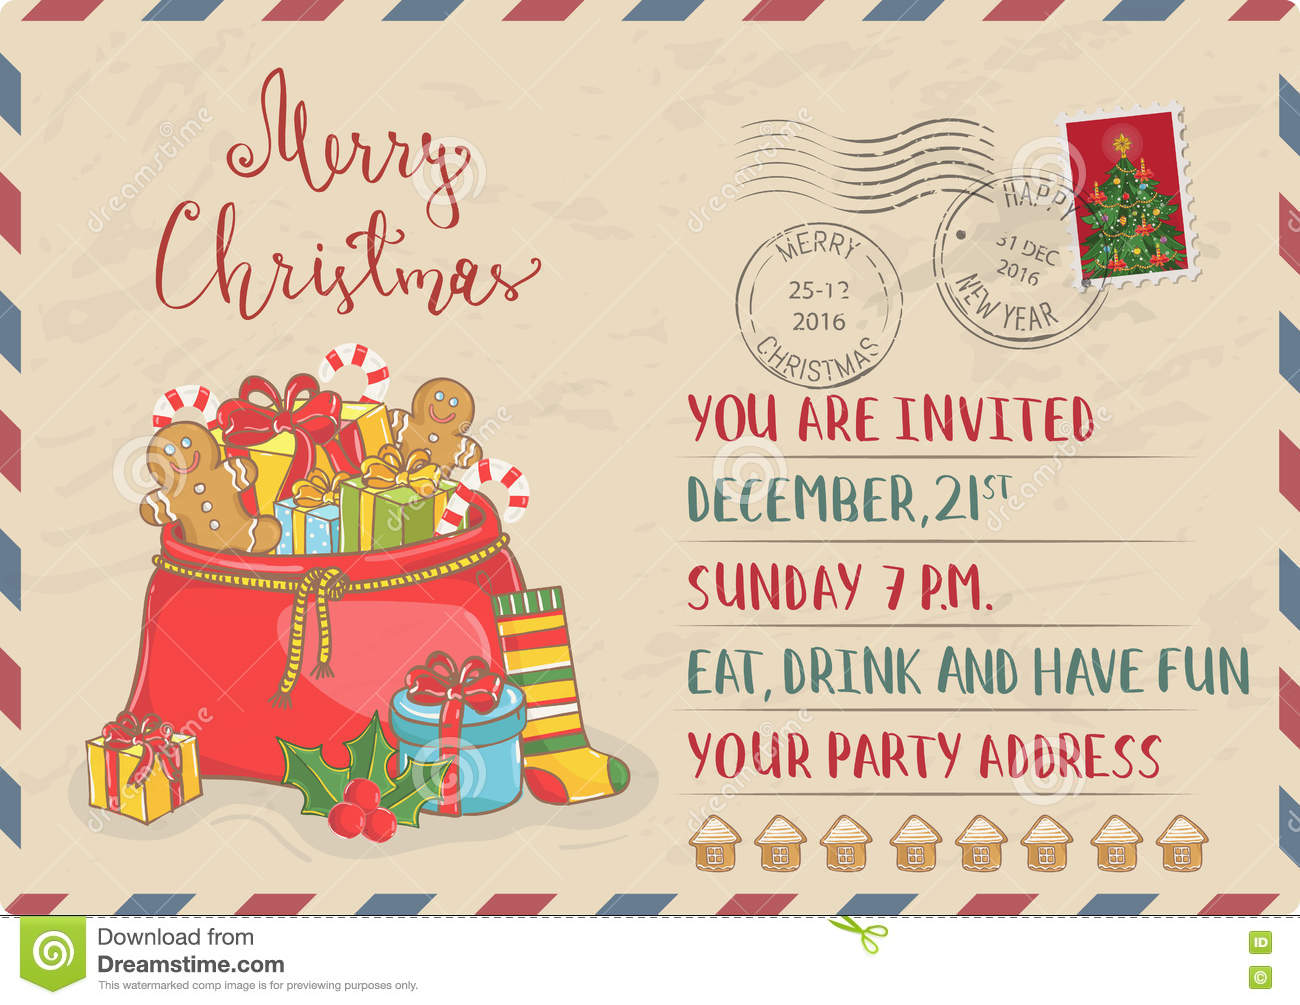 Vintage Christmas Invitation With Postage Stamps Stock Vector ...